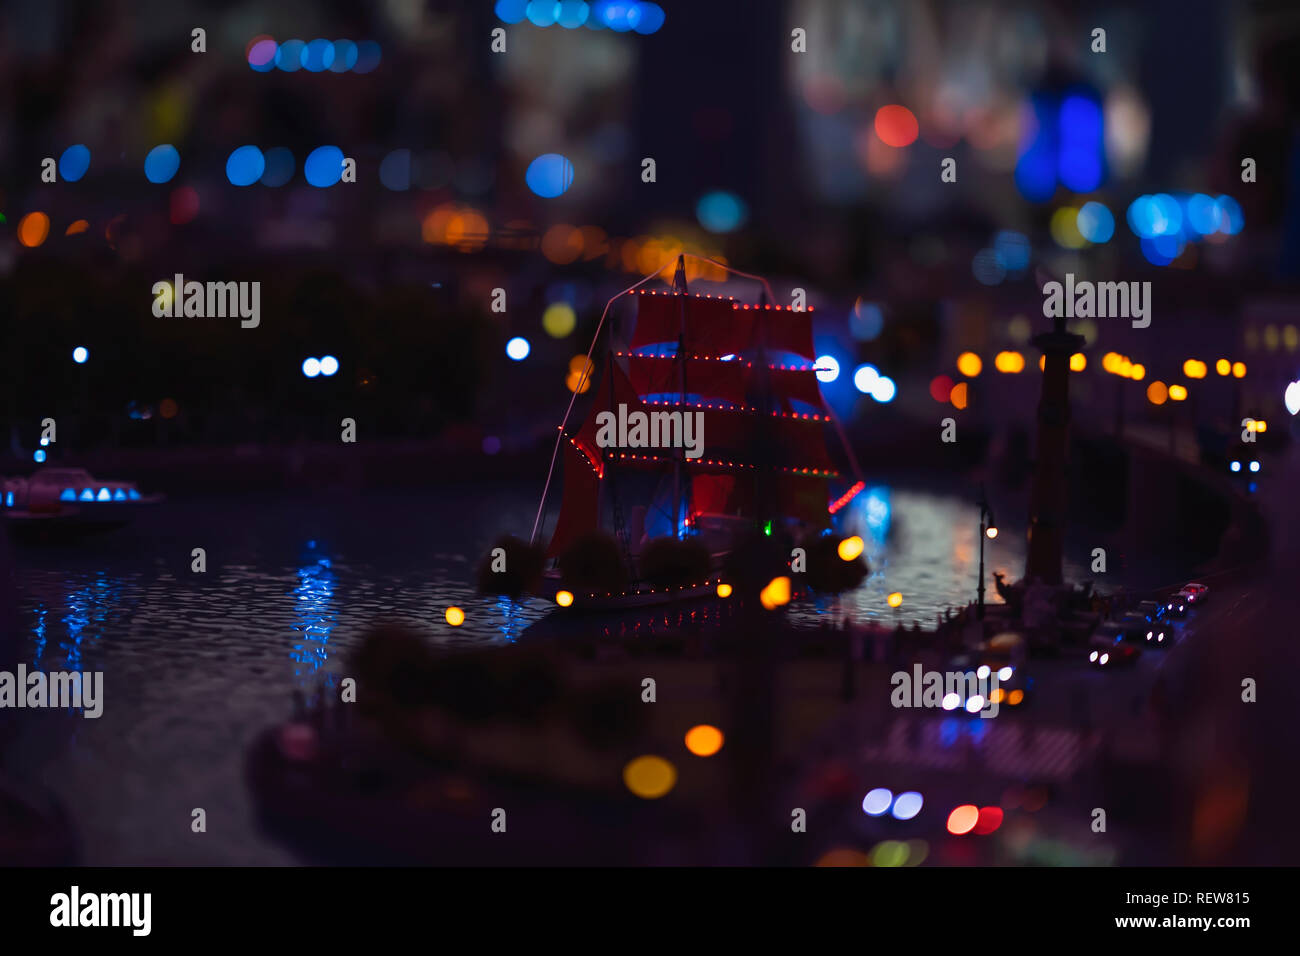 Night bokeh, defocused city light with sailboat at the pier, realistic miniature, abstract blurred background - Stock Image